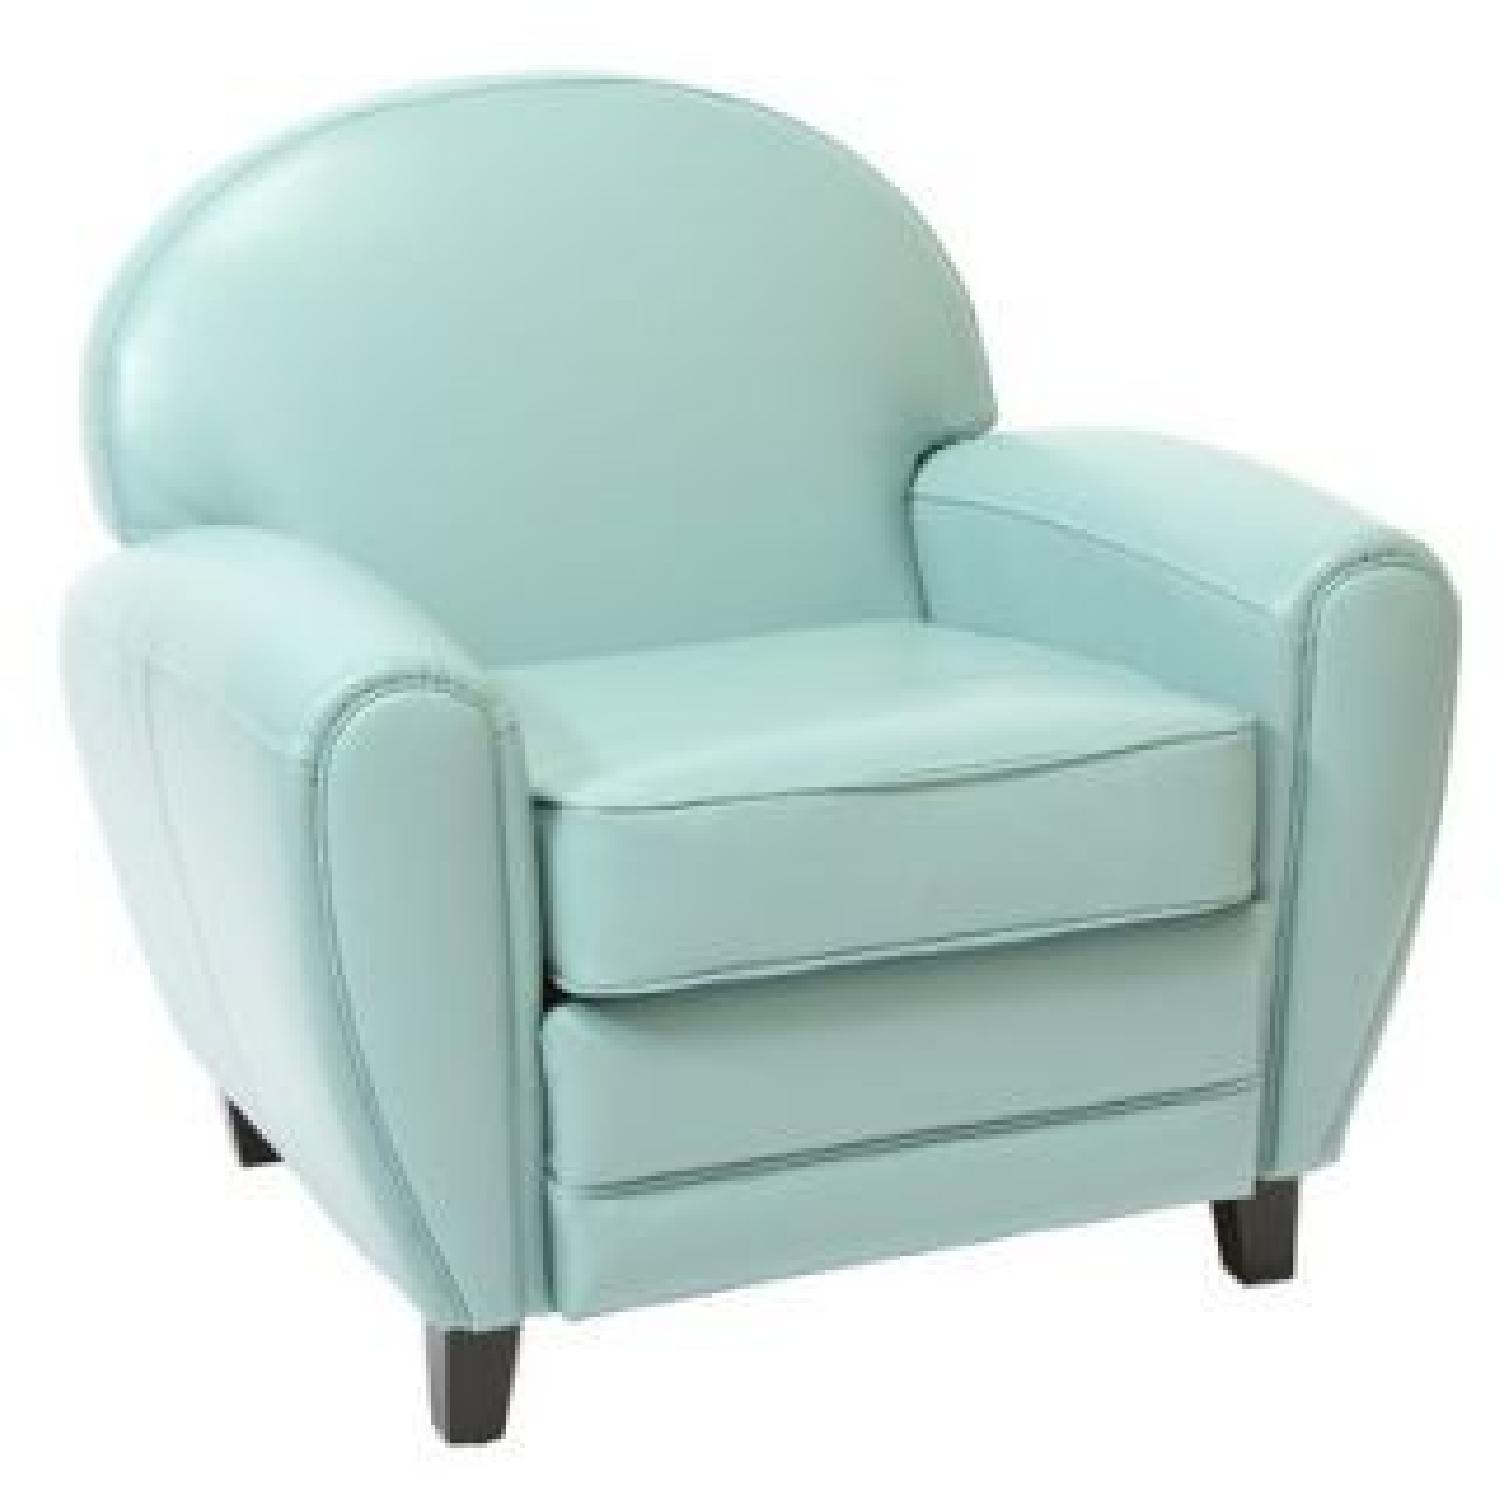 Home Loft Concept Lorenz Leather Cigar Chair in Teal Blue - image-0